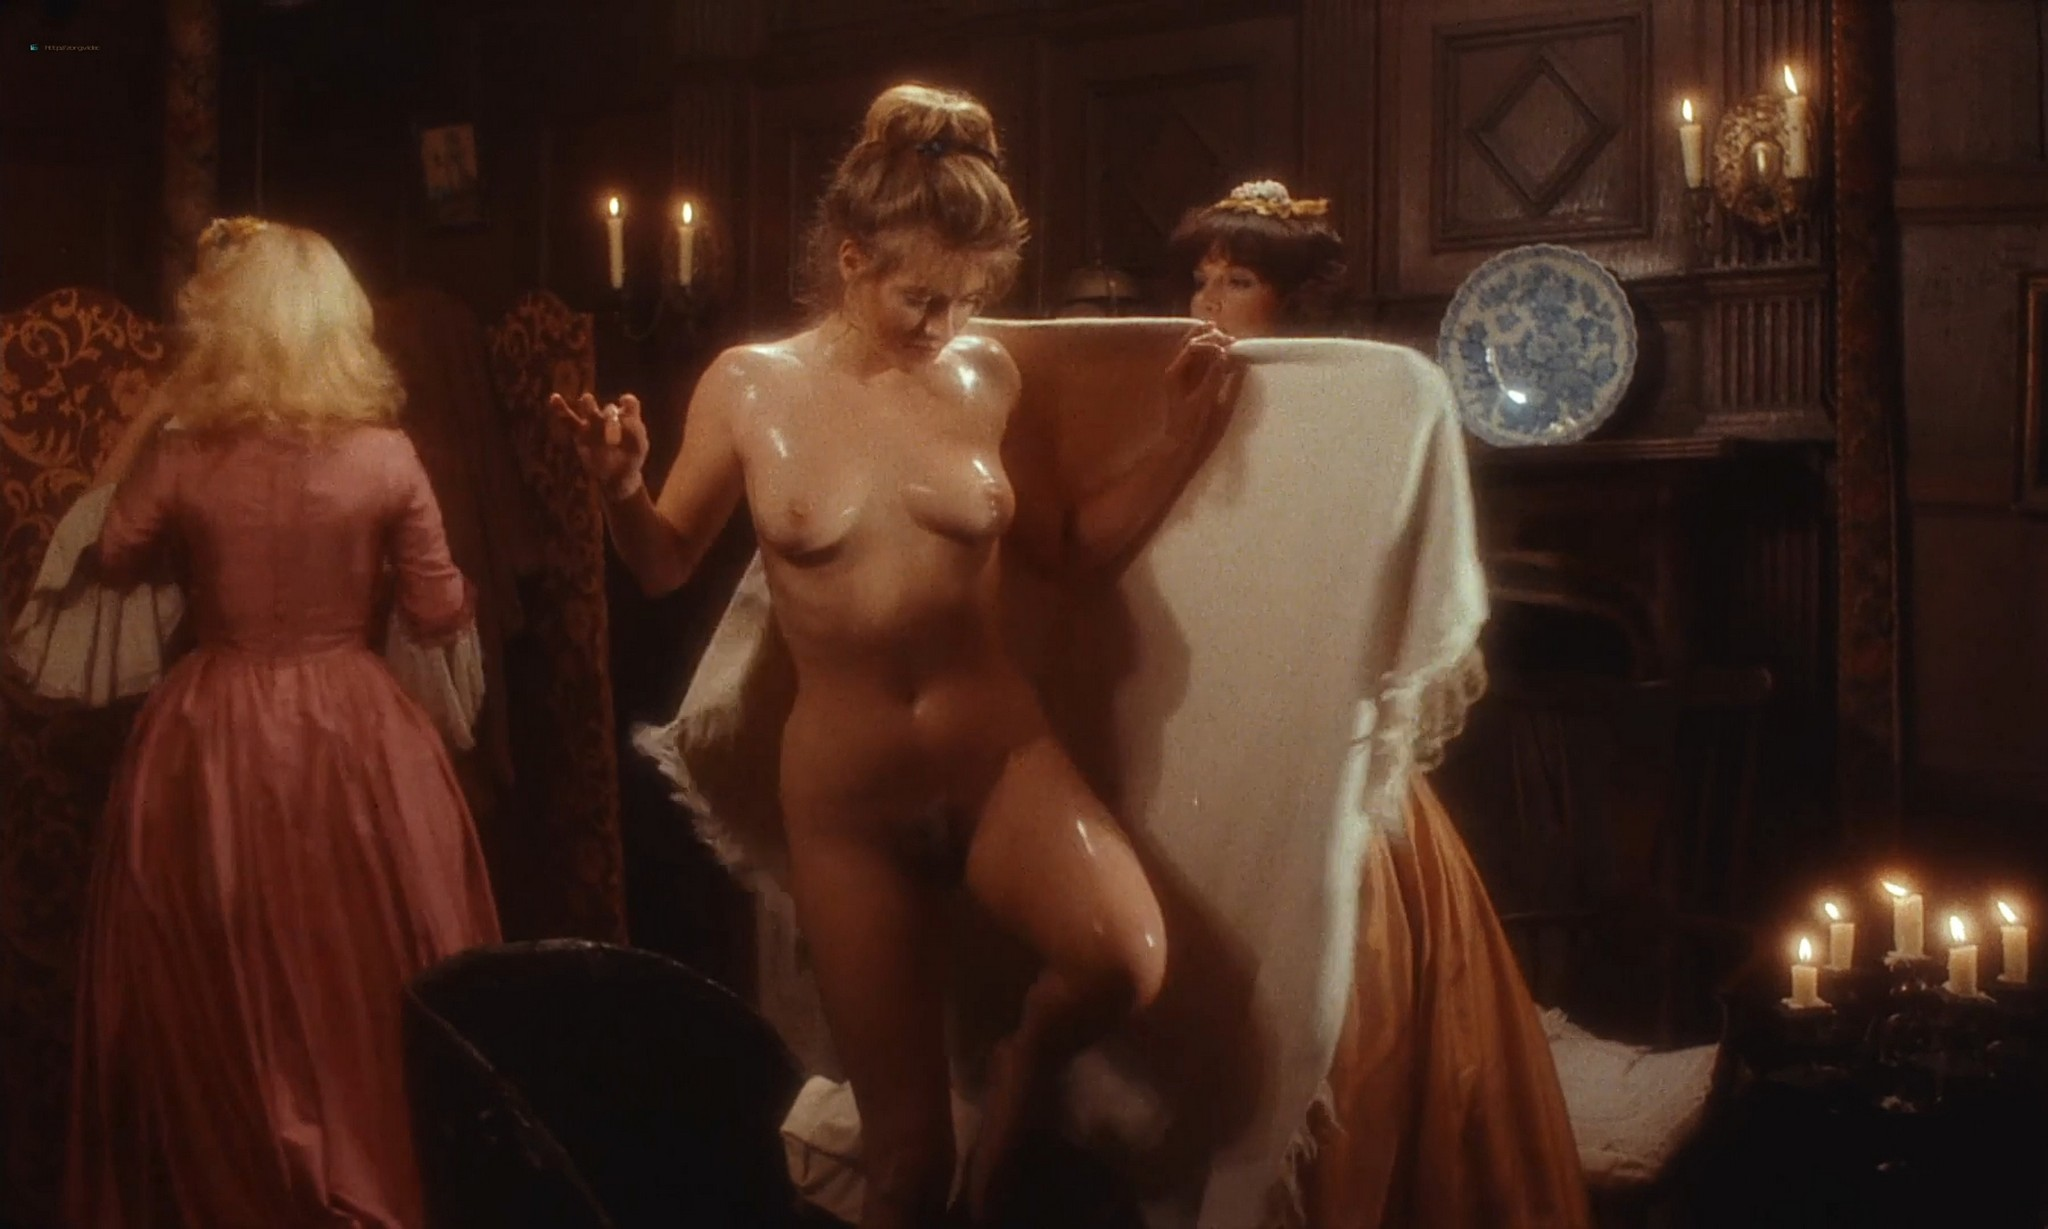 Lisa Foster nude full frontal hot sex Maria Harper and others nude sex etc Fanny Hill 1983 1080p BluRay 2